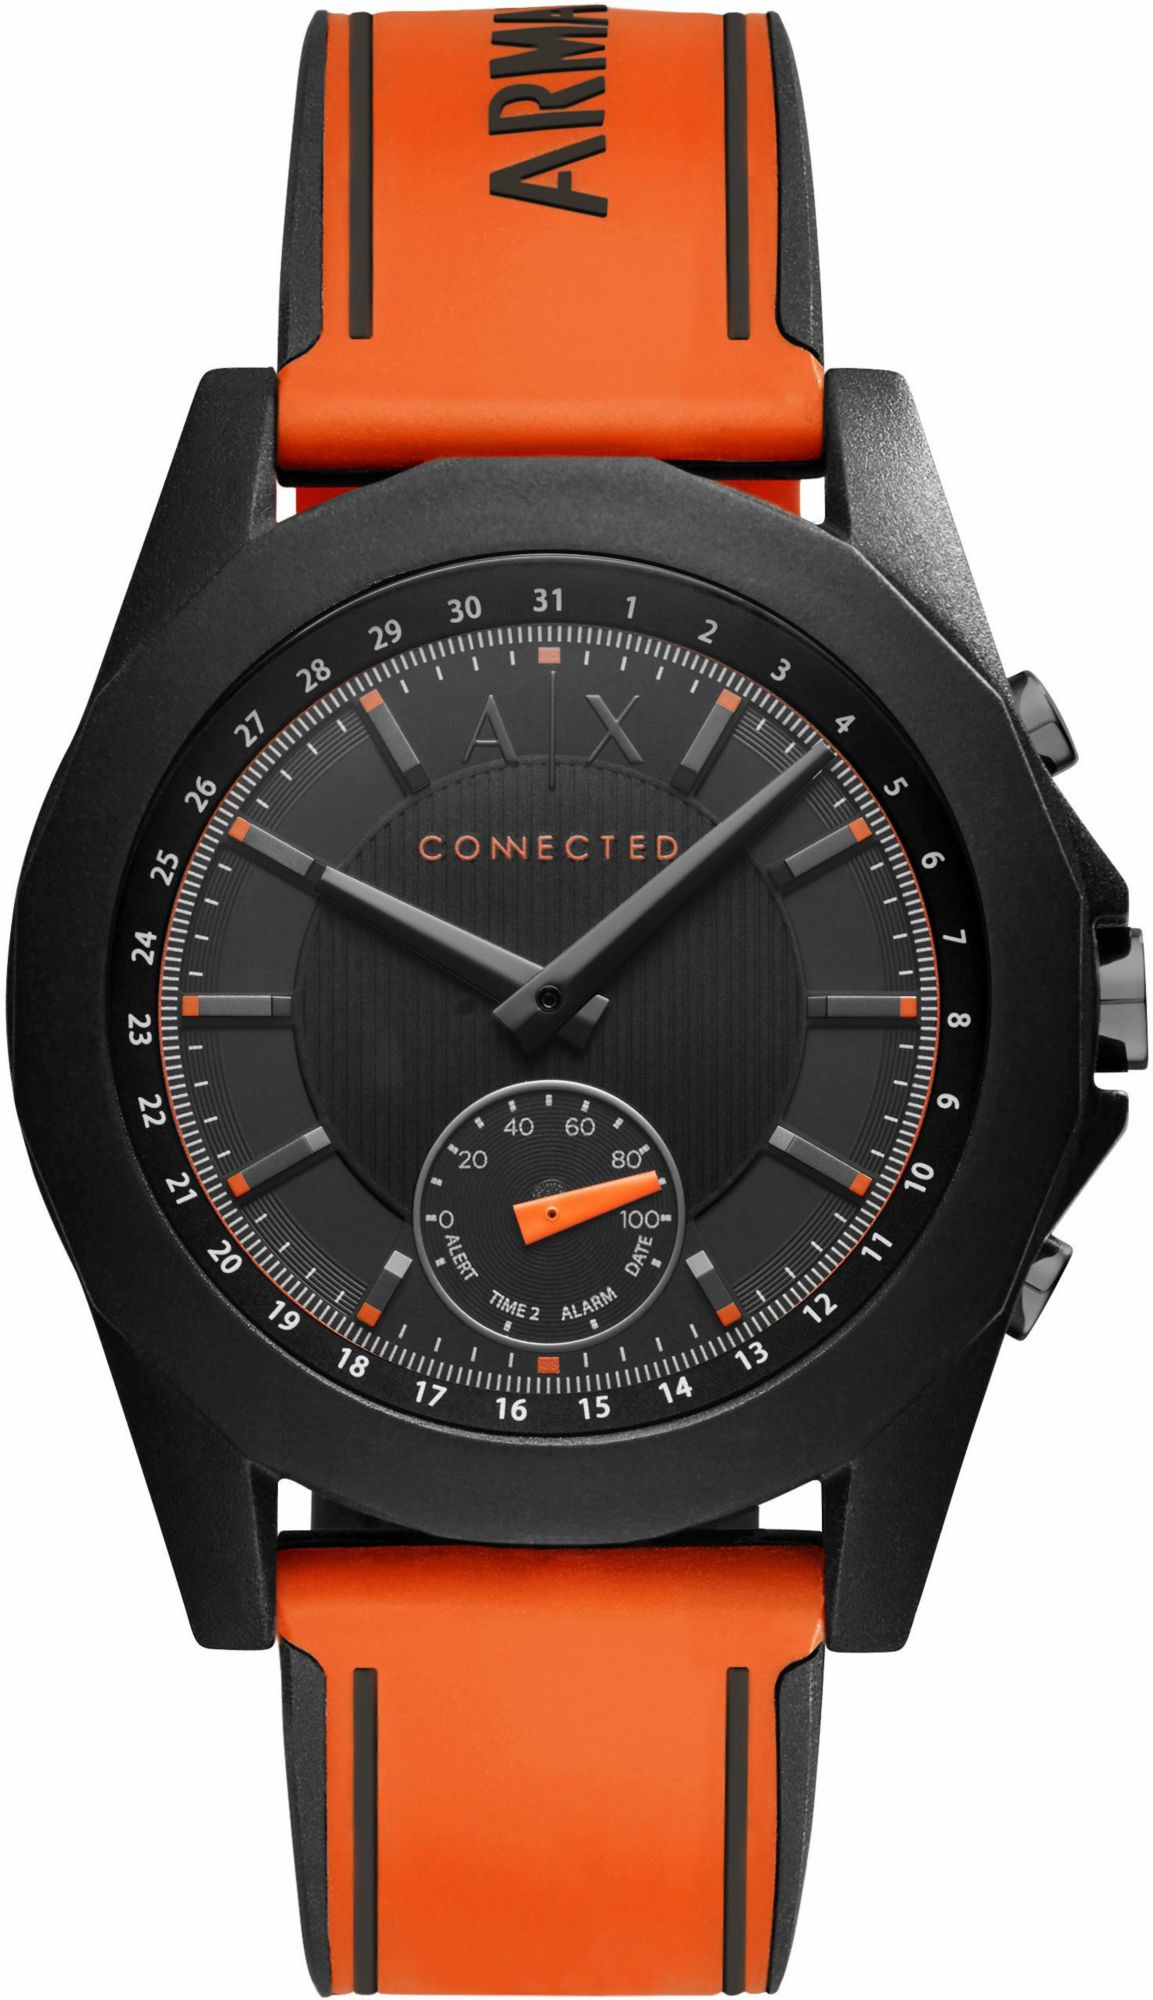 ARMANI EXCHANGE CONNECTED Armani Exchange Connected AXT1003 Smartwatch ( Android Wear)